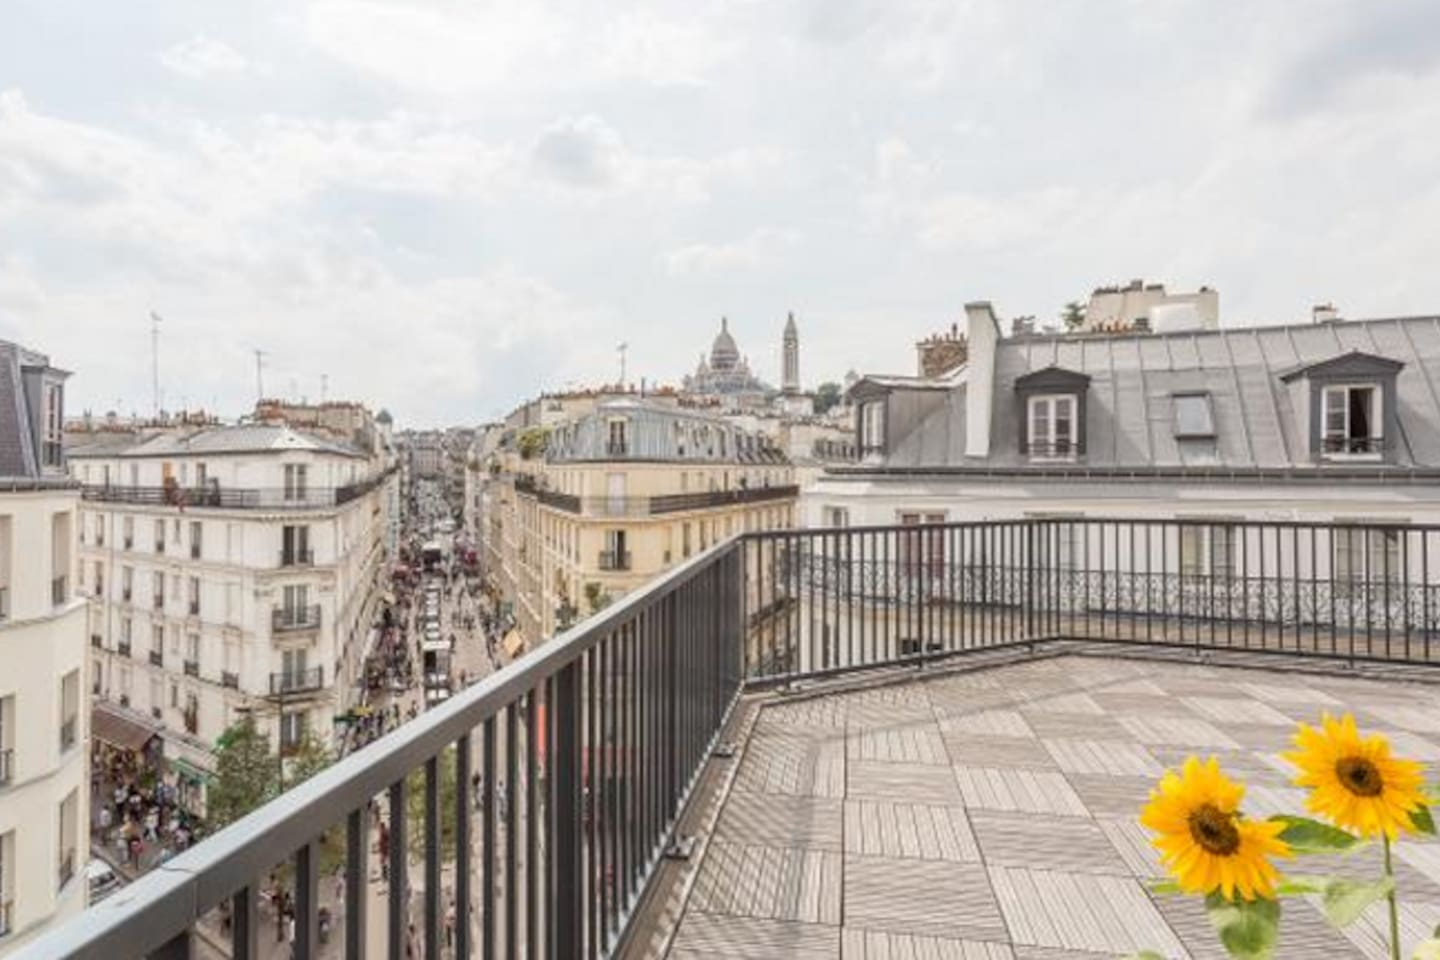 Shared terrace on top of the building with a look on the Sacré Coeur